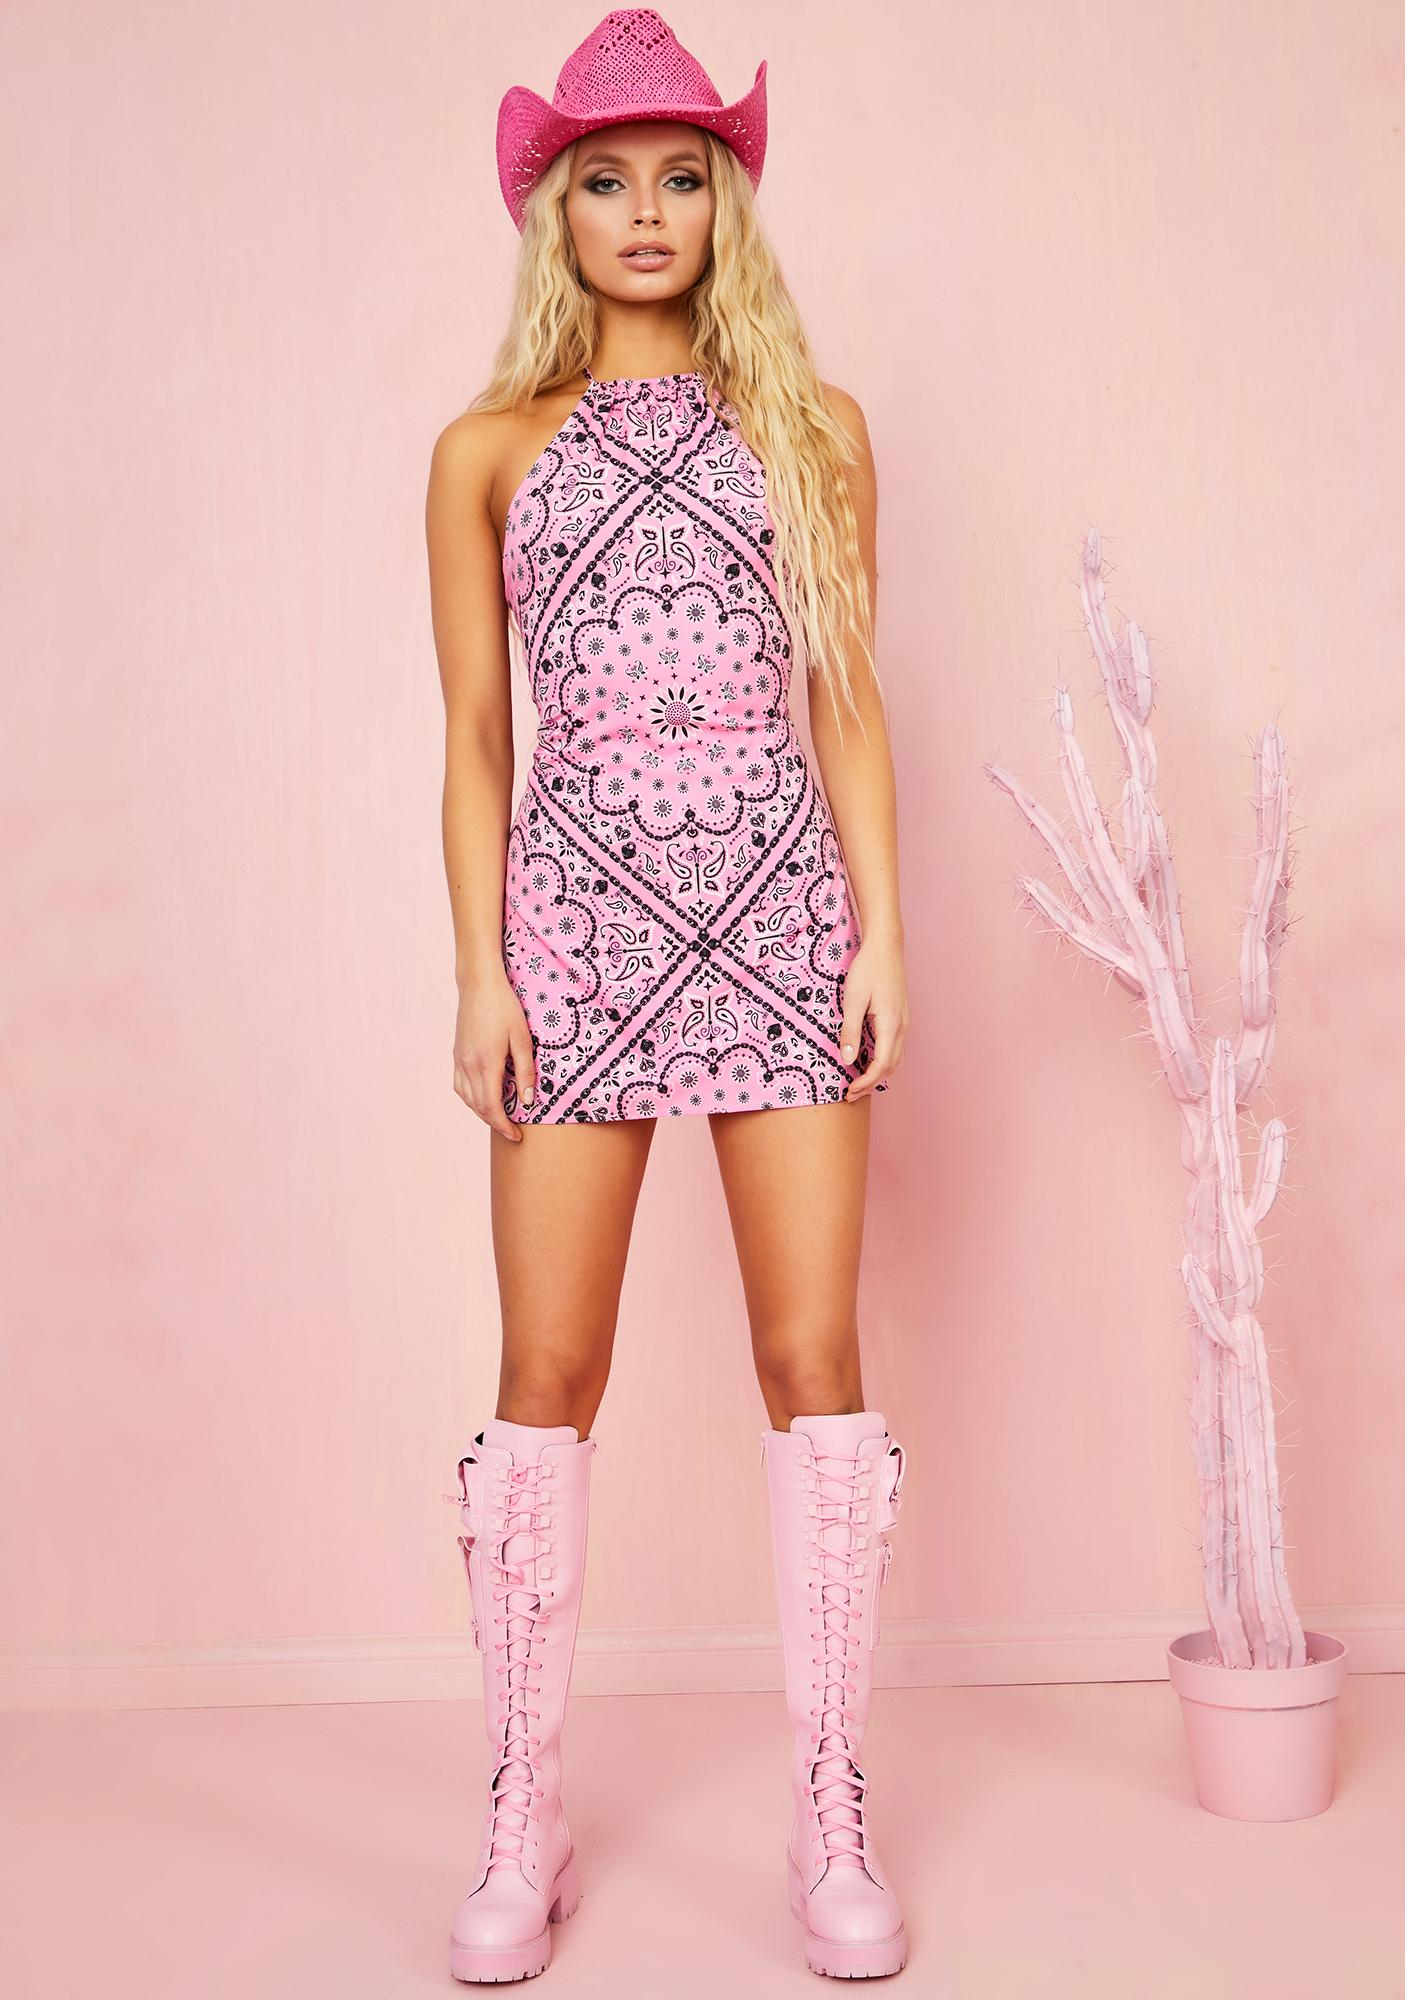 Sugar Thrillz Candy Bandit Mini Dress